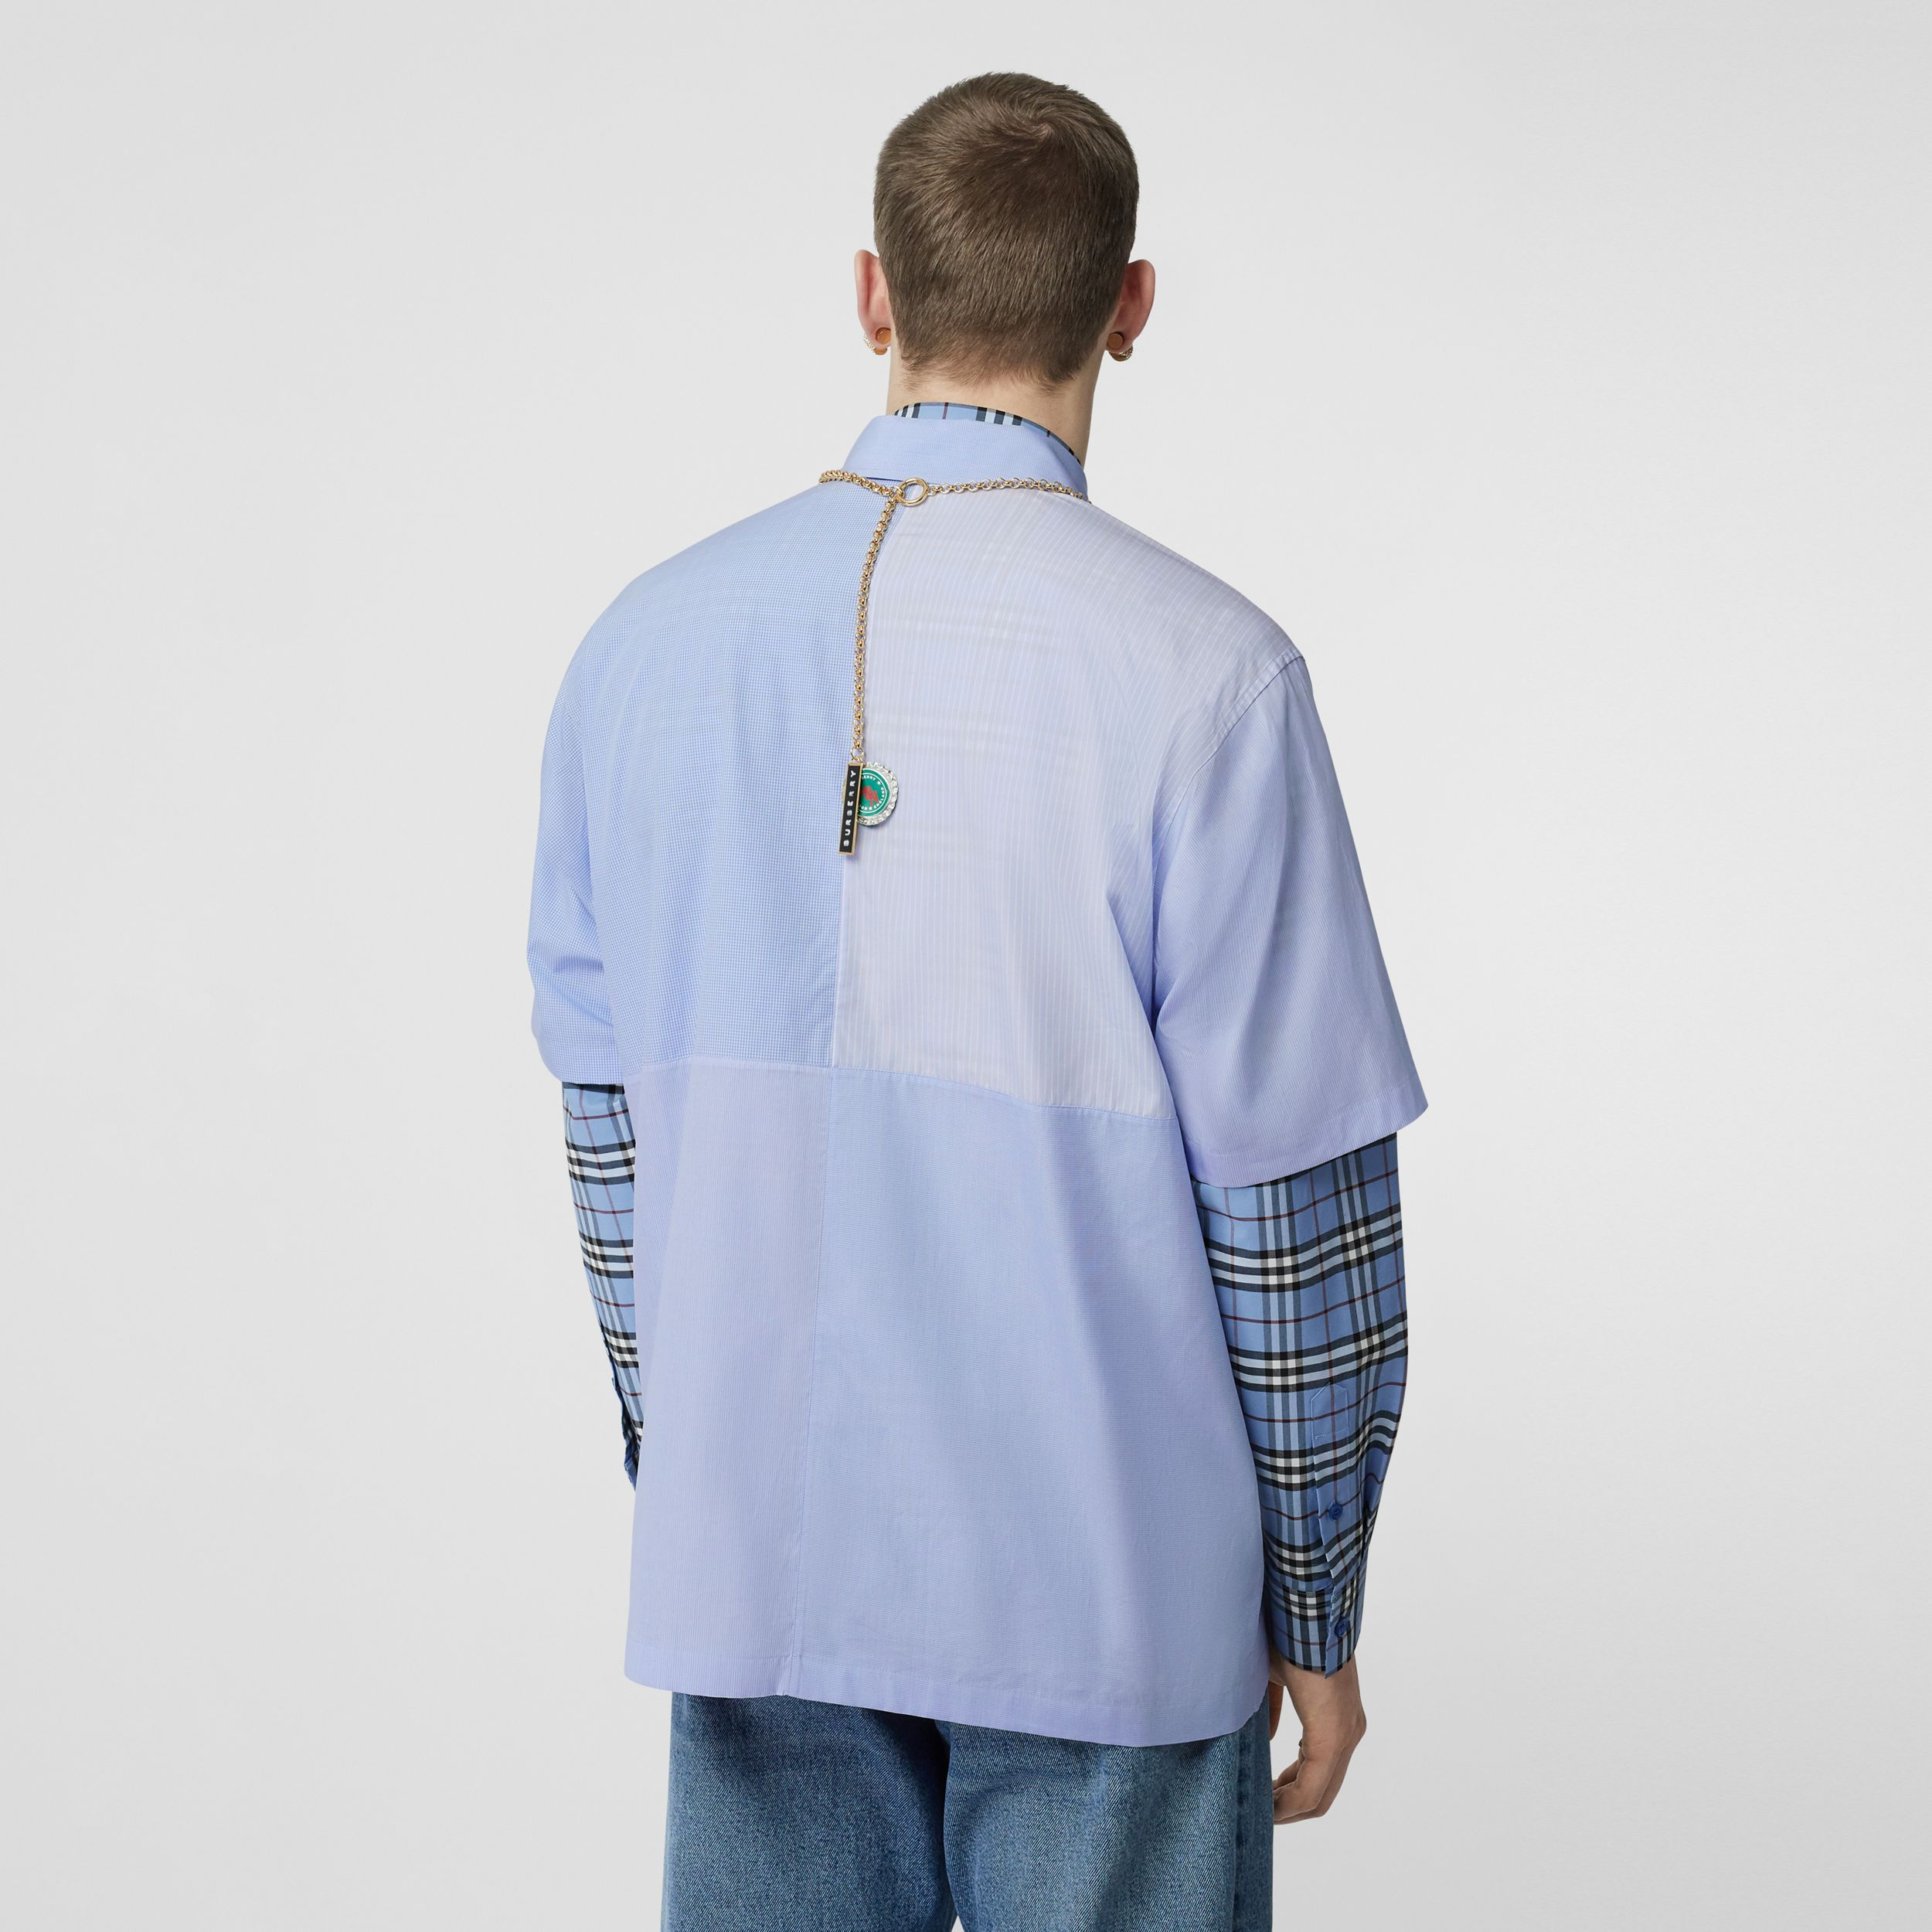 Short-sleeve Logo Graphic Patchwork Cotton Shirt in Pale Blue - Men | Burberry - 3